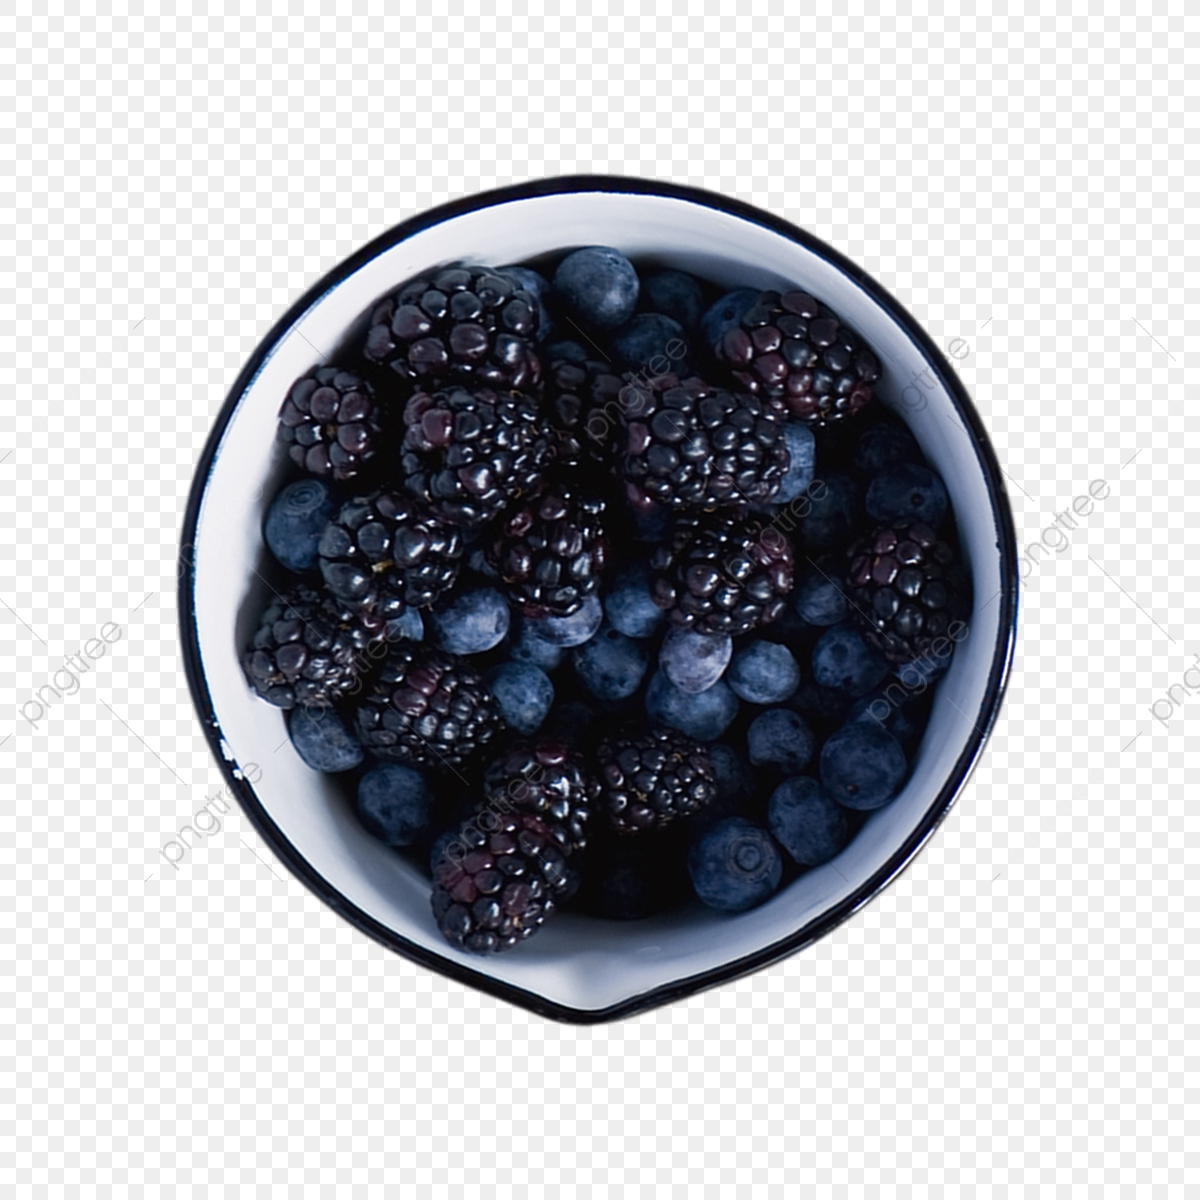 Blueberries clipart one blueberry. In a bowl png